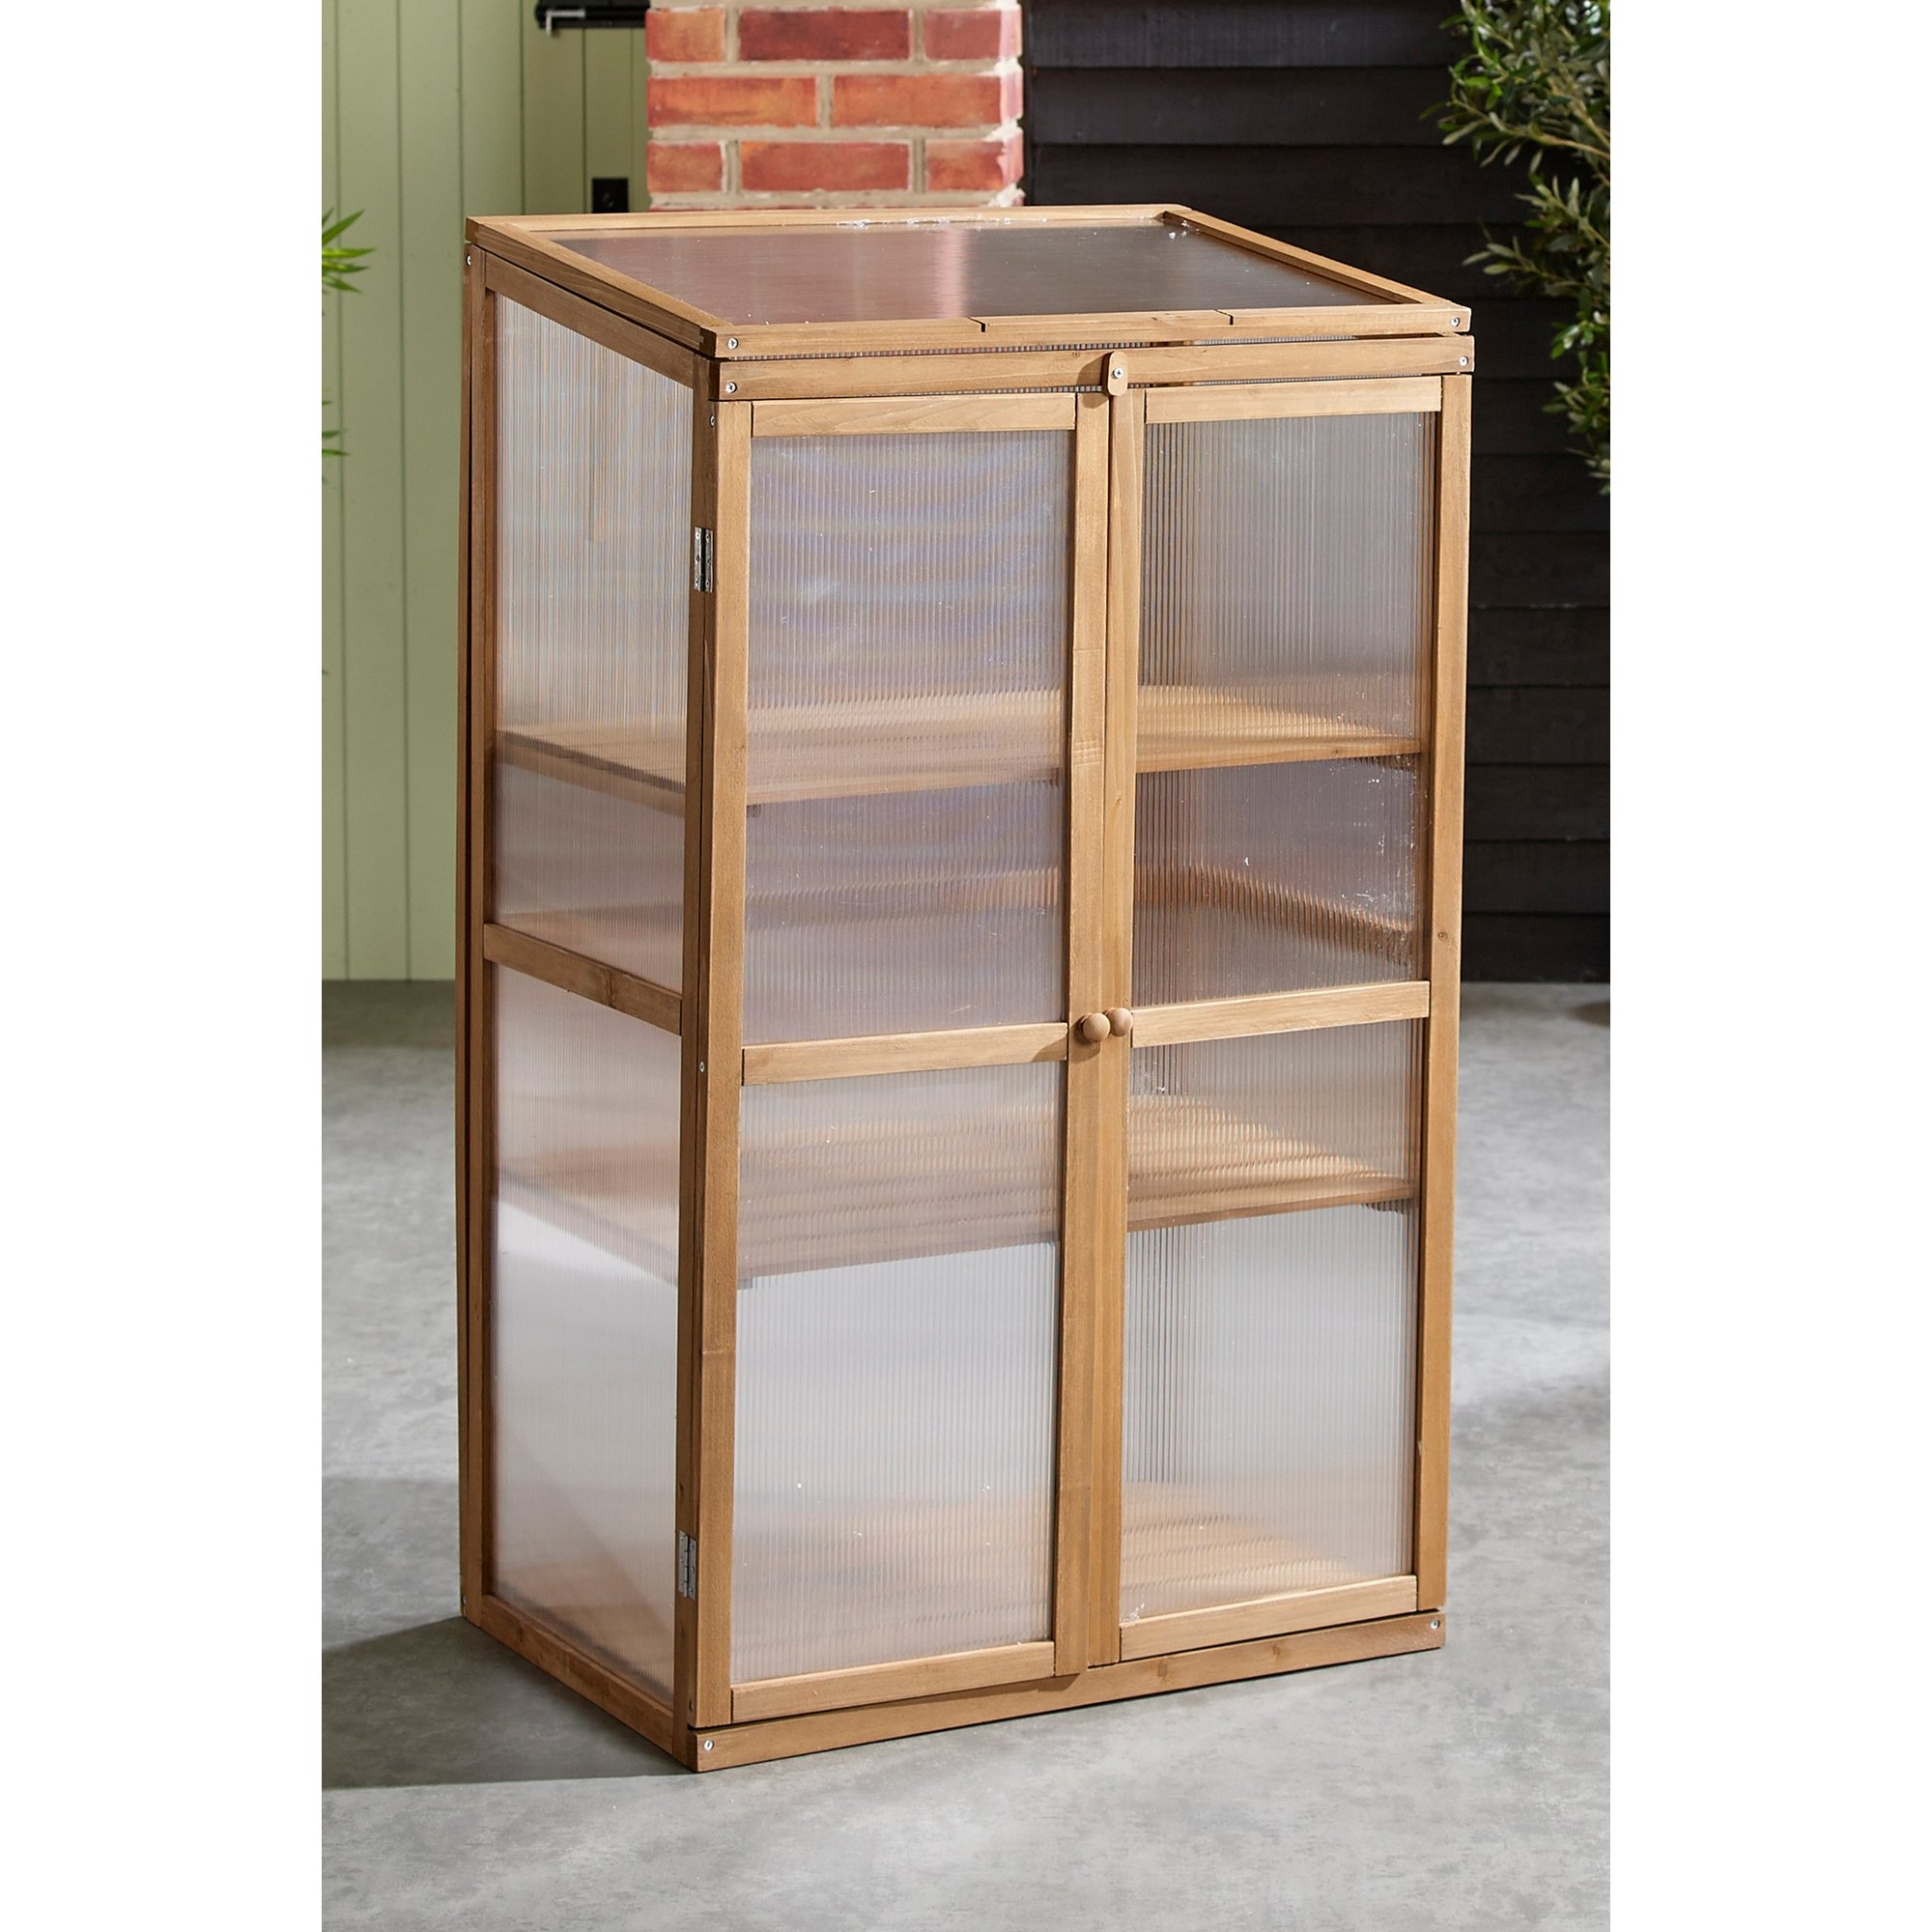 Image of Tall Cold Frame Wooden and Polycarbonate Greenhouse